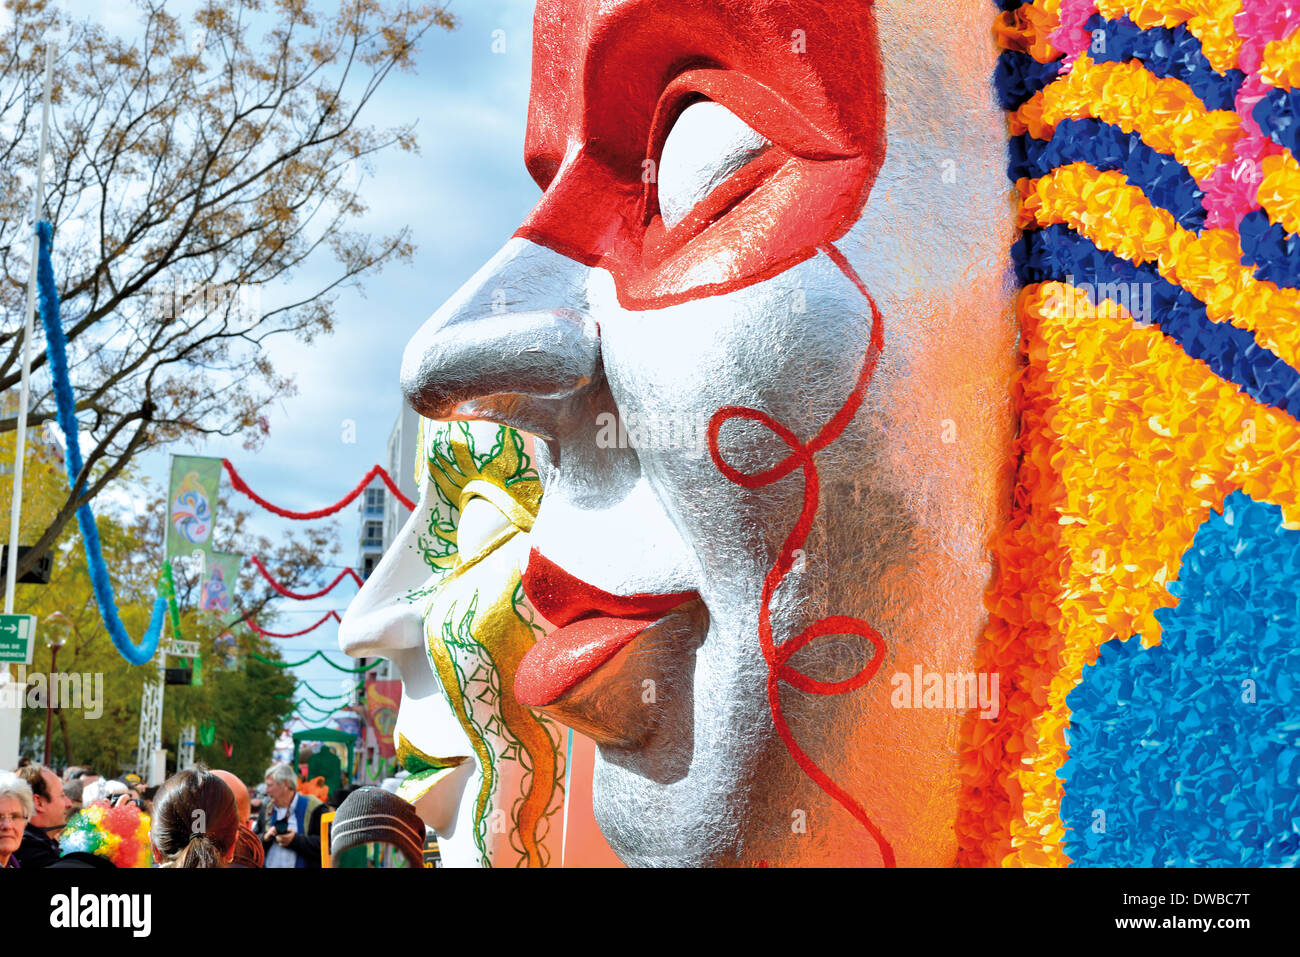 Portugal, Algarve: Giant mask of the carnival parade of Loulé - Stock Image